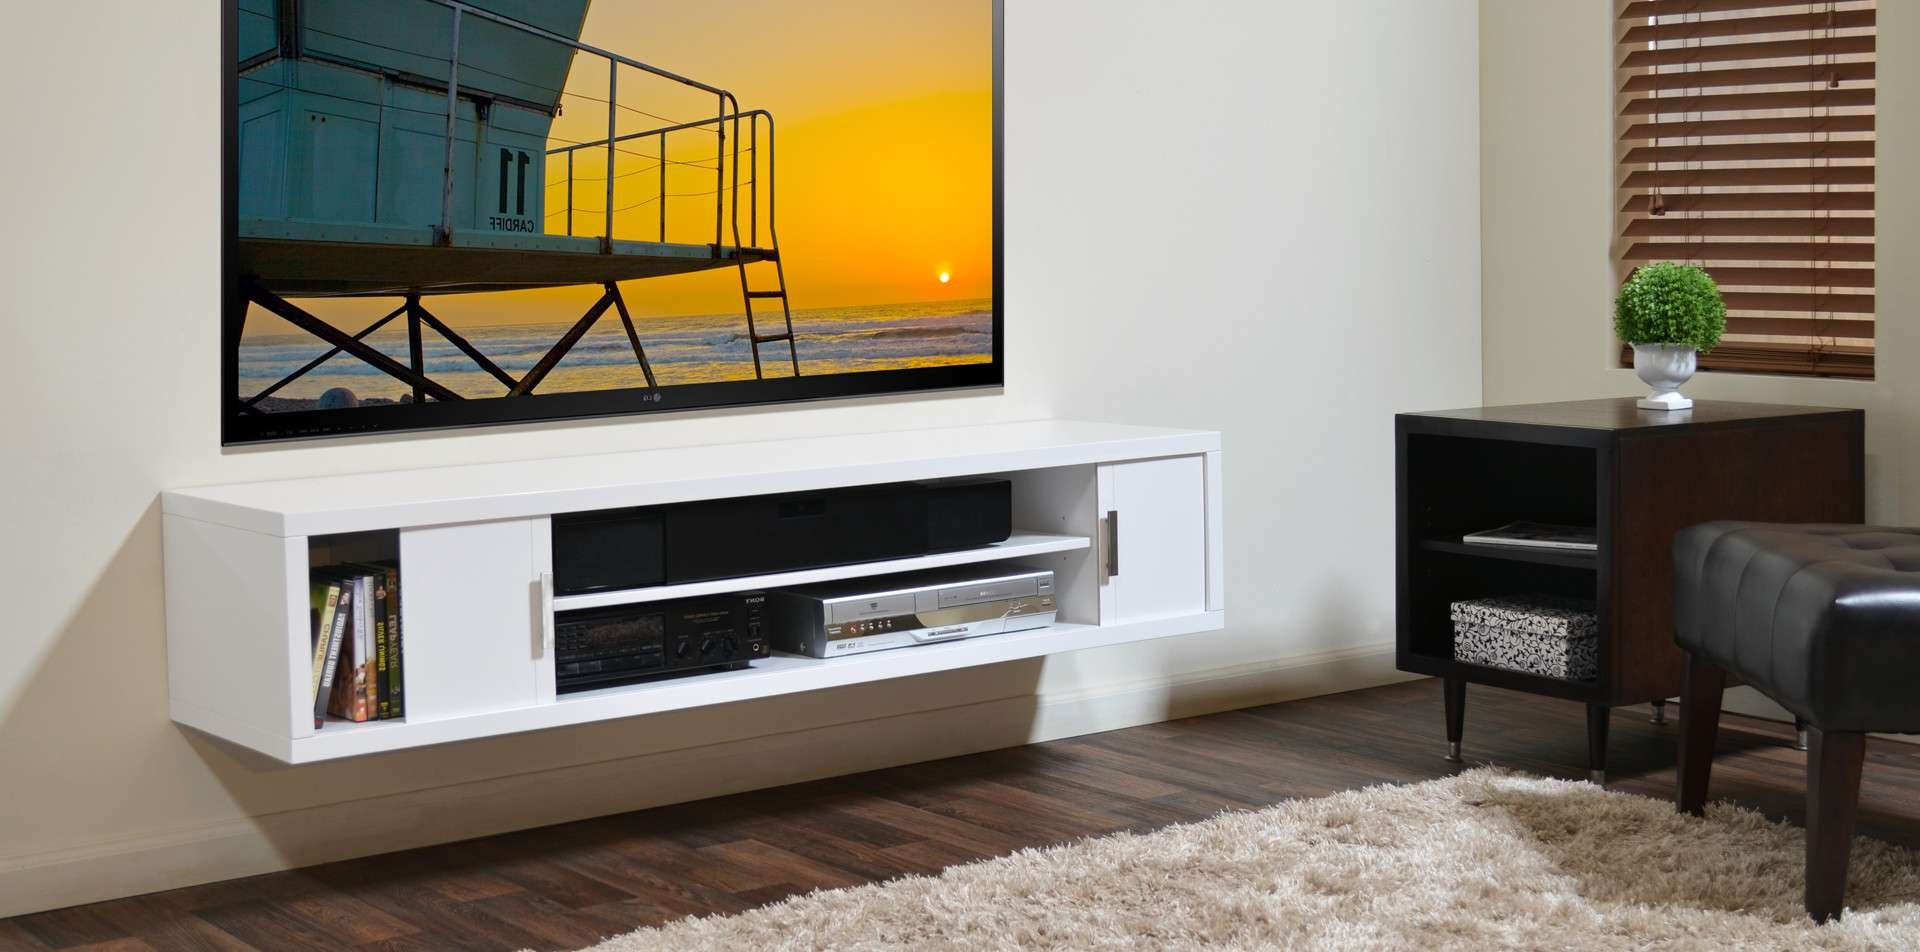 Long Wood Wall Mounted Media Shelf And Cabinet Tv Stand – Decofurnish Inside Single Shelf Tv Stands (View 2 of 15)